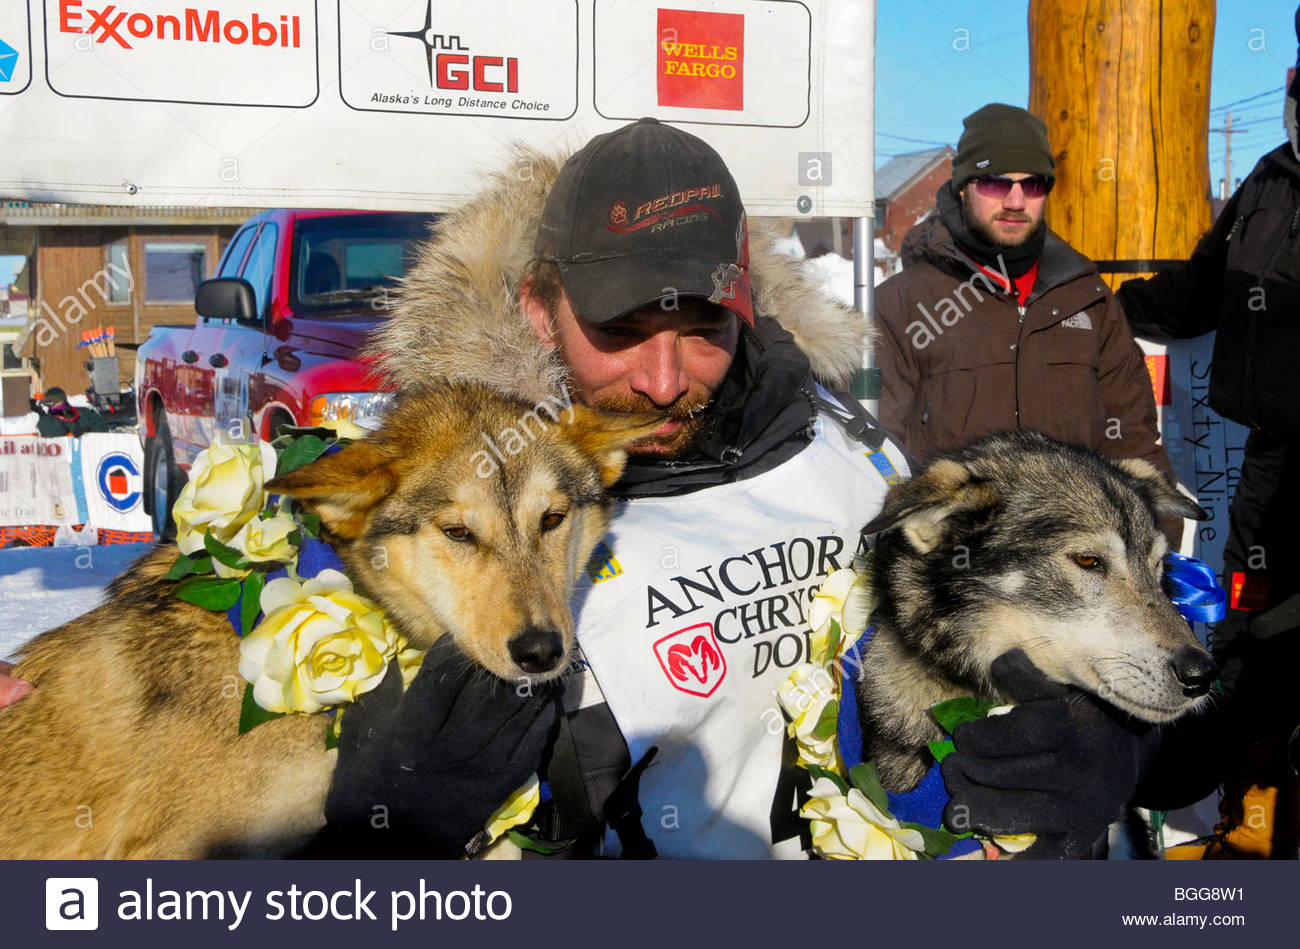 Lance Mackey sits with his lead dogs Maple and Larry just after winning Iditarod race, Nome, Alaska, March 18, 2009 - Stock Image